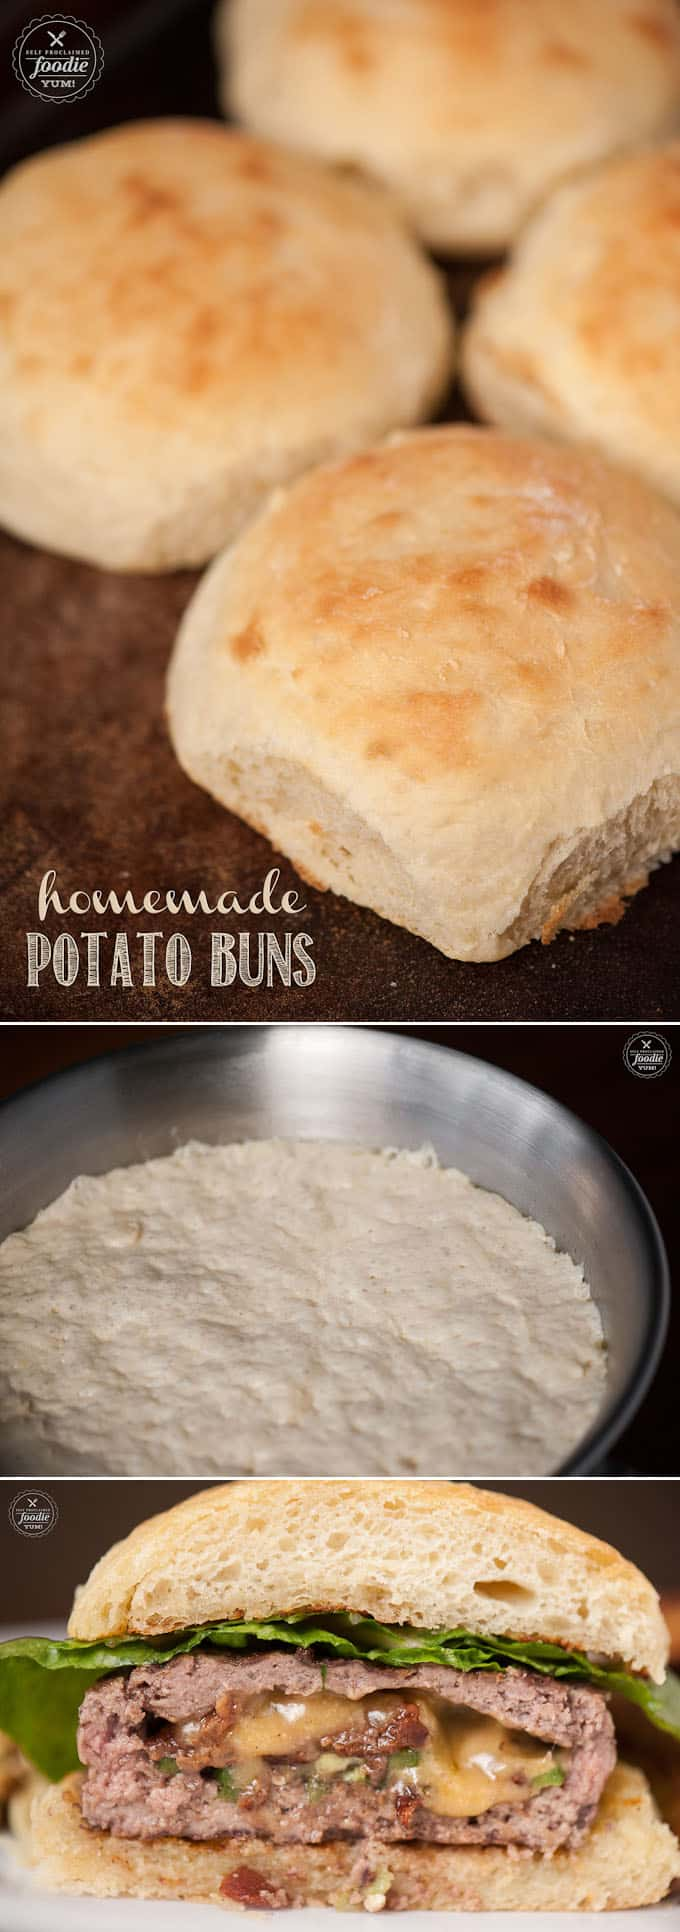 If you love making bread, you'll never want to buy store bought buns or rolls again after making these super soft and perfectly fluffy Homemade Potato Buns.